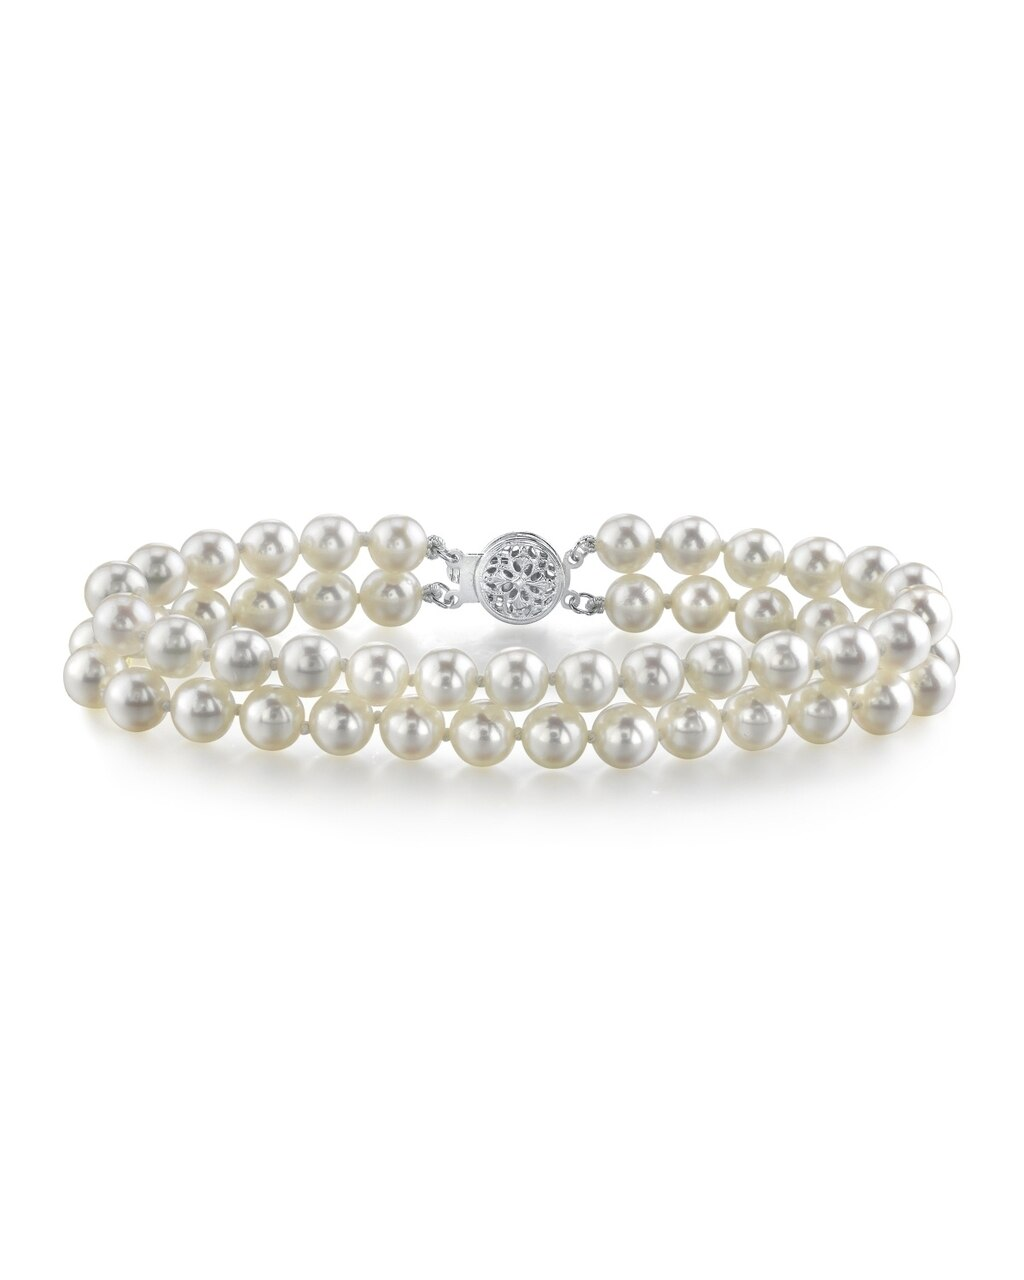 This elegant bracelet features 6.0-6.5mm double Strand Japanese Akoya pearls, handpicked for their luminous luster